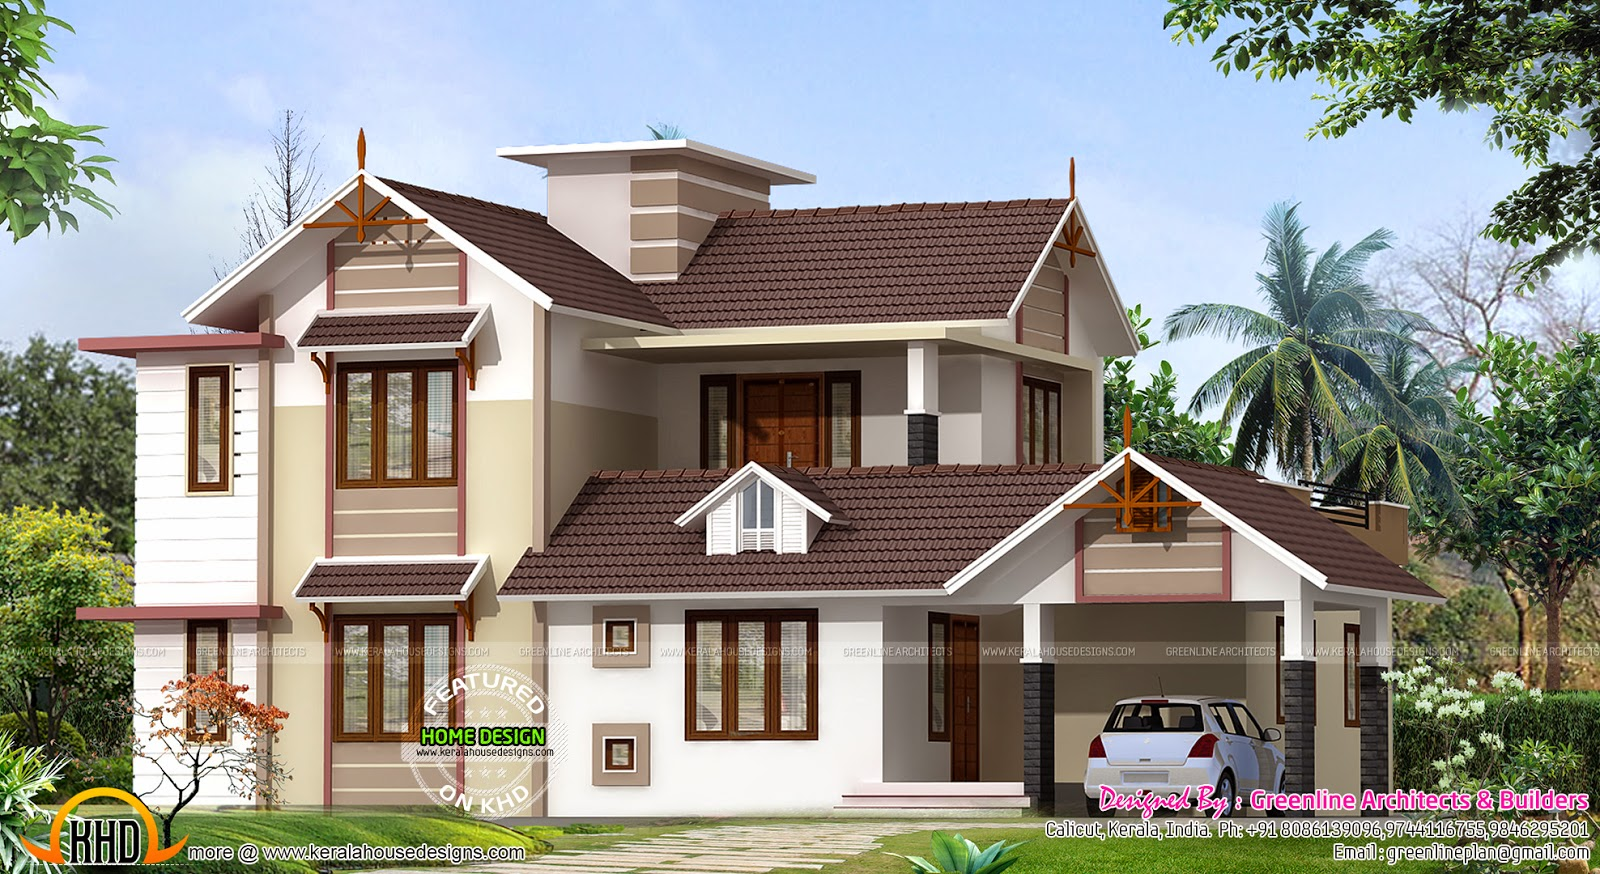 2400 sq ft new house design kerala home design and floor Latest home design